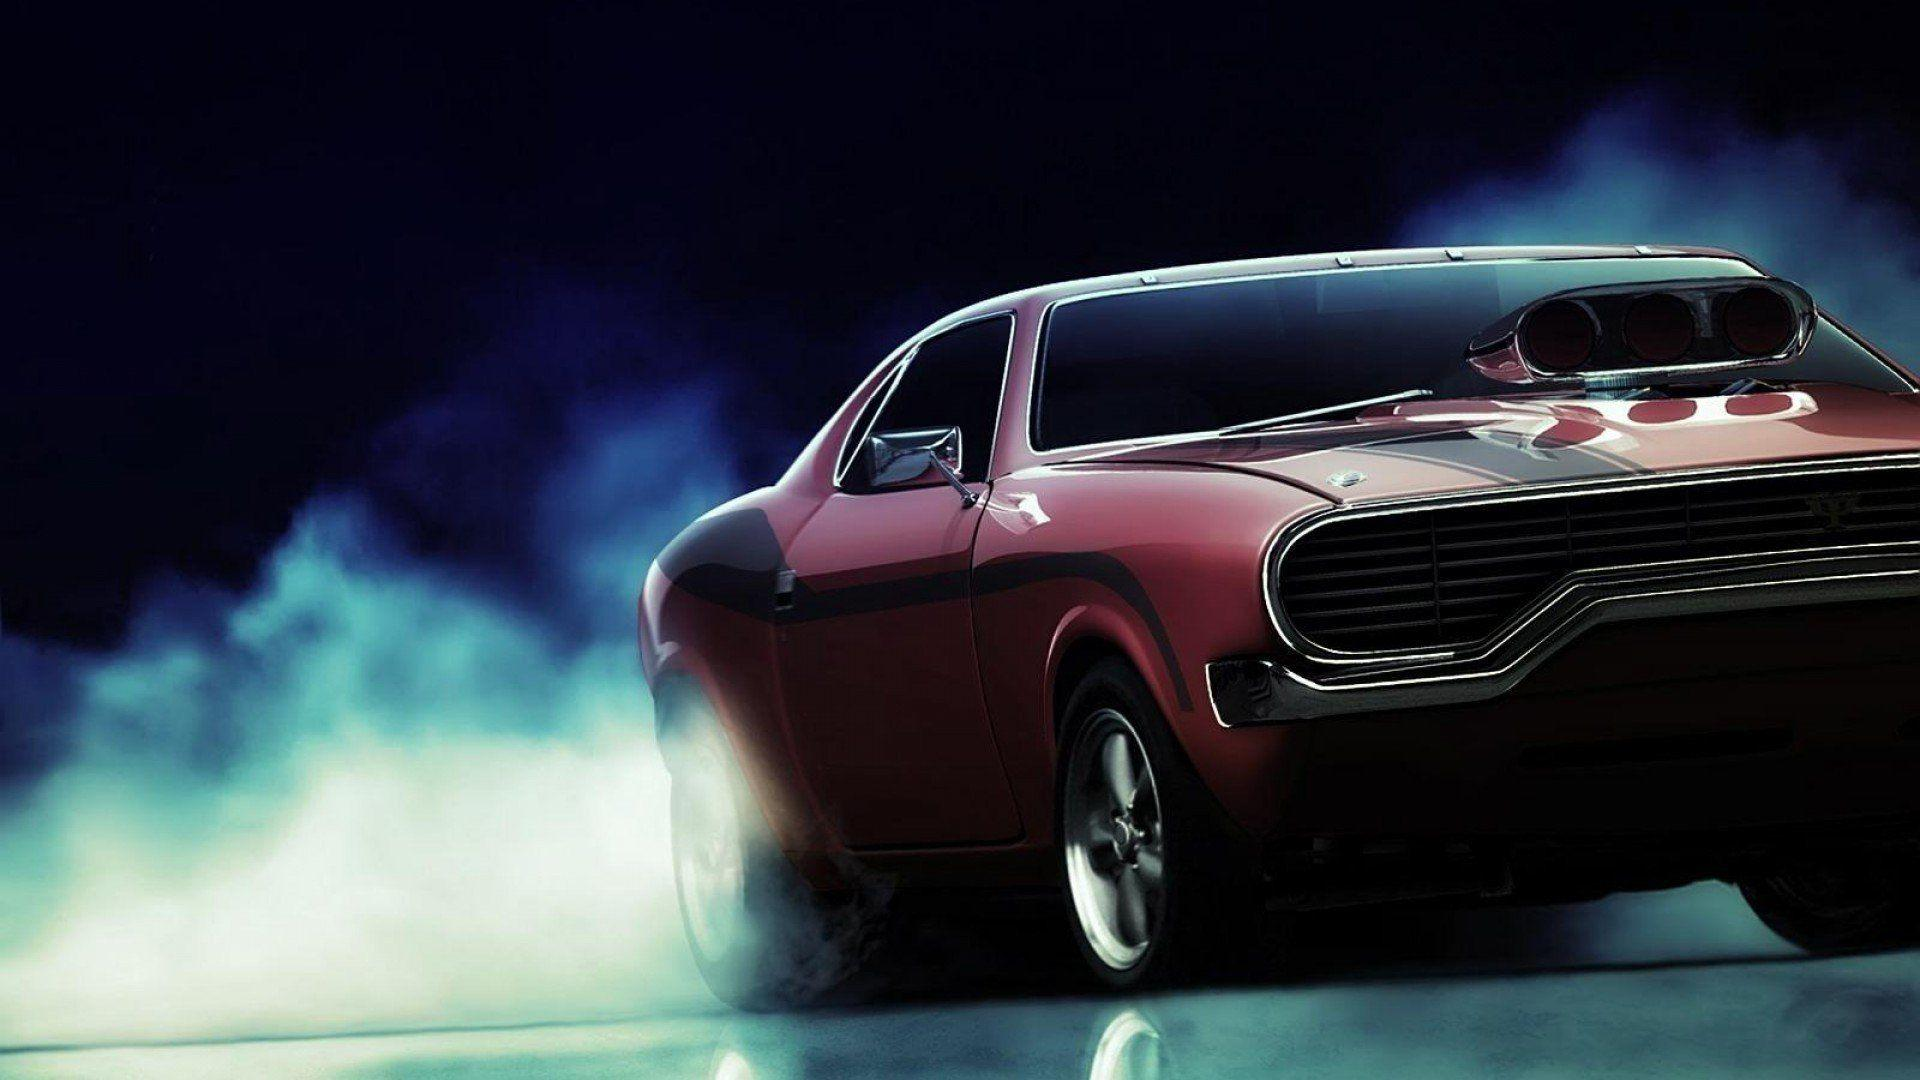 Cars Dodge vehicles sports cars wallpapers